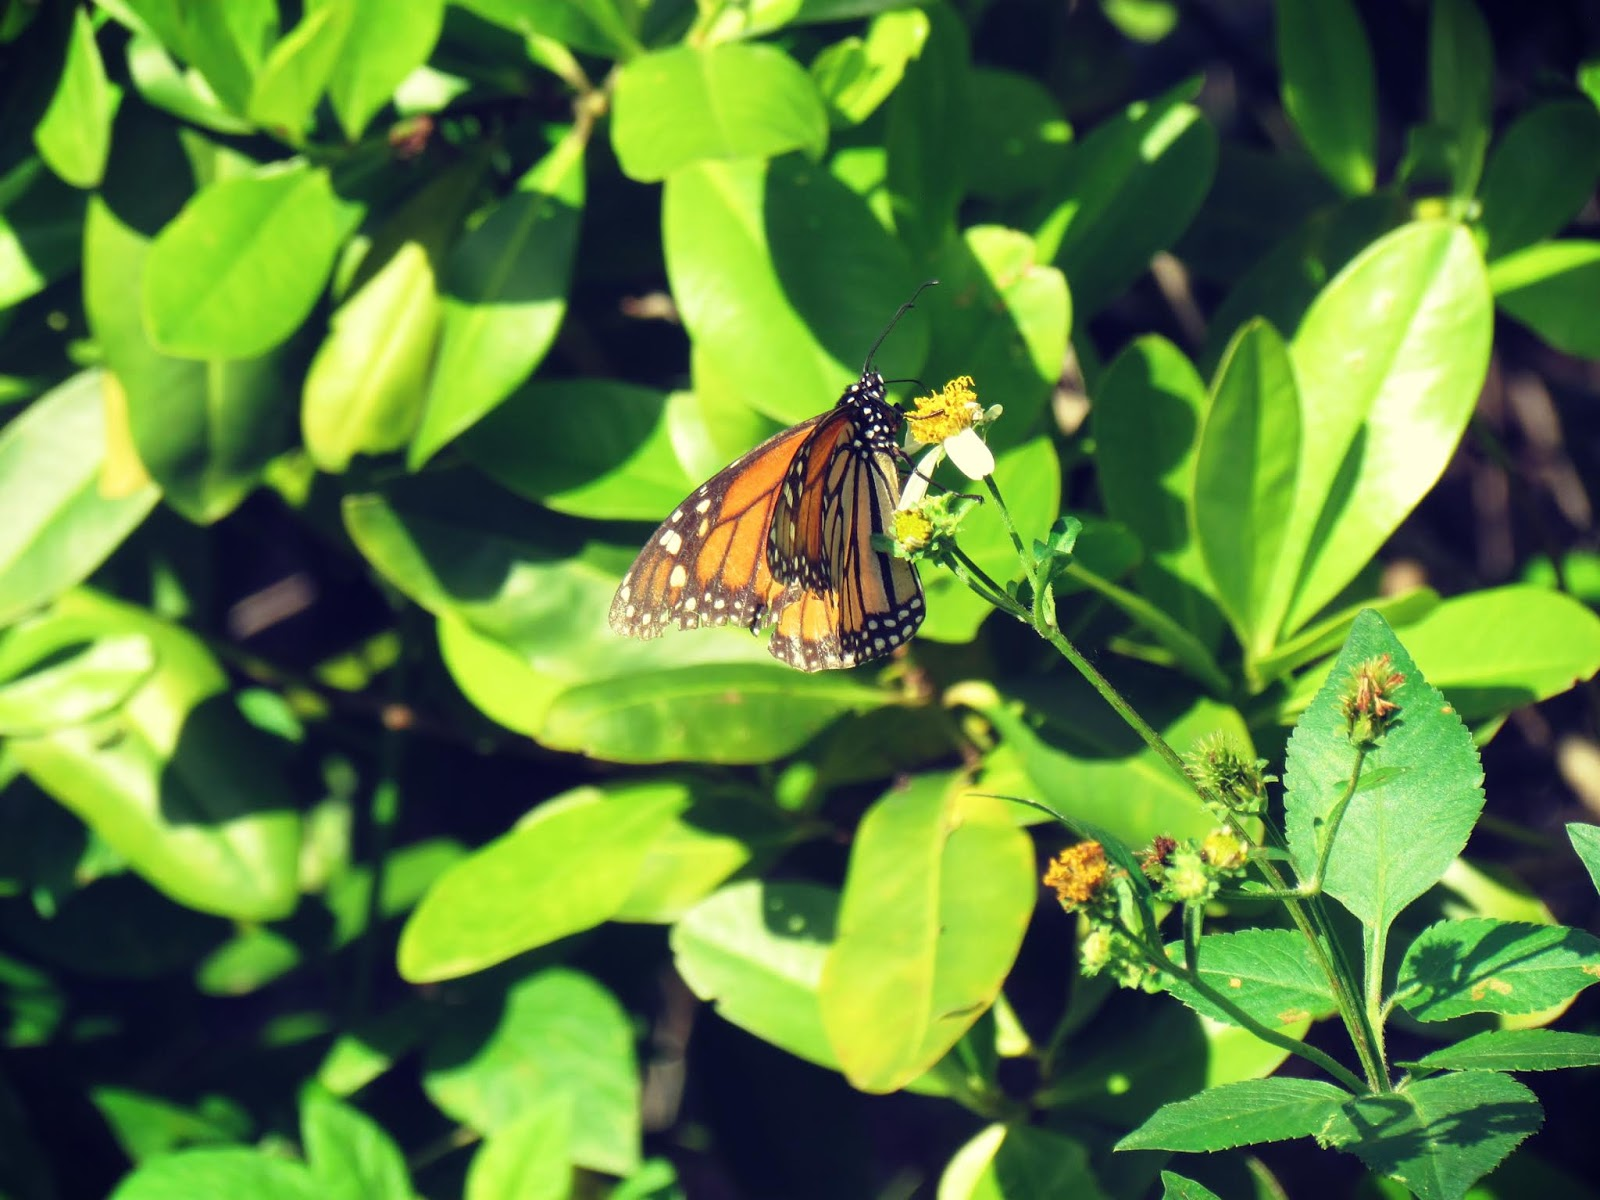 Migrating Monarch Butterfly of Transformation and Awakening